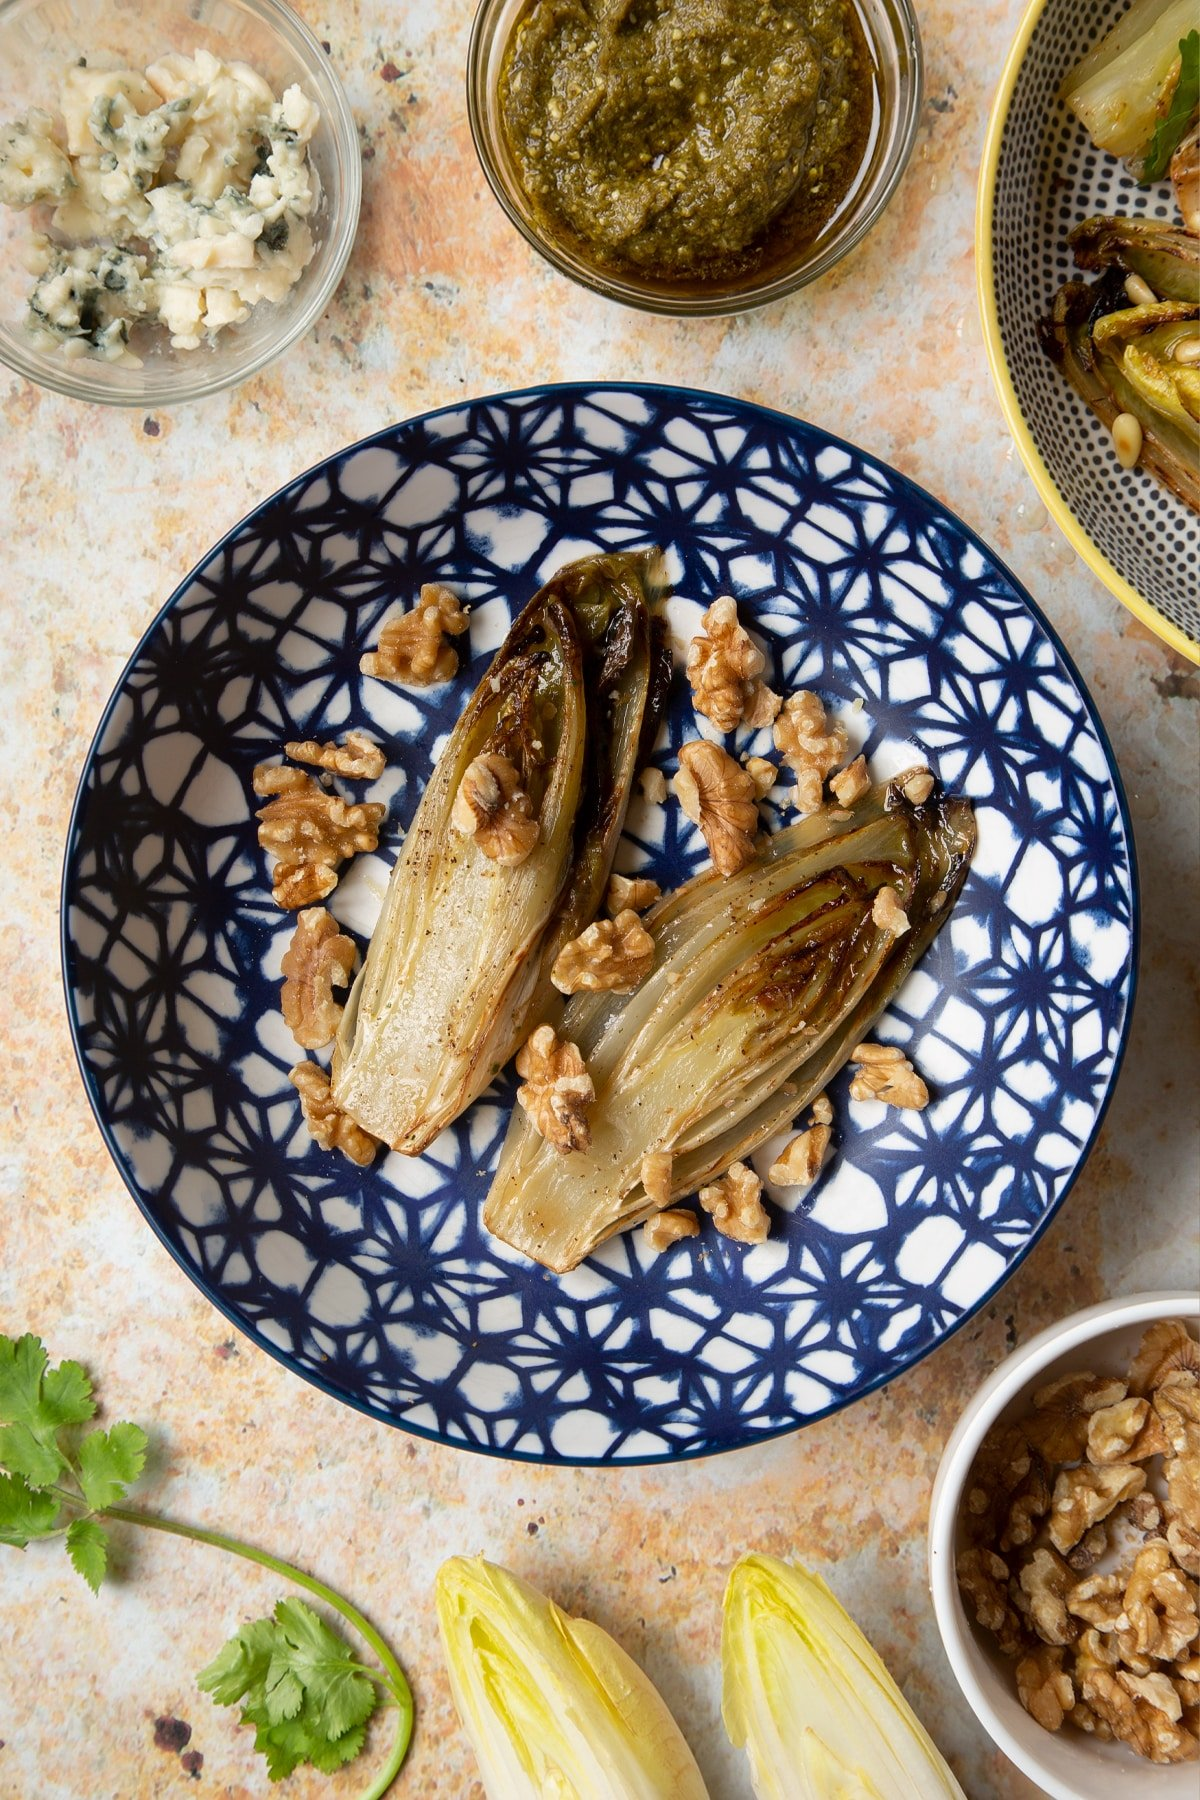 Braised chicory in a bowl with walnuts.